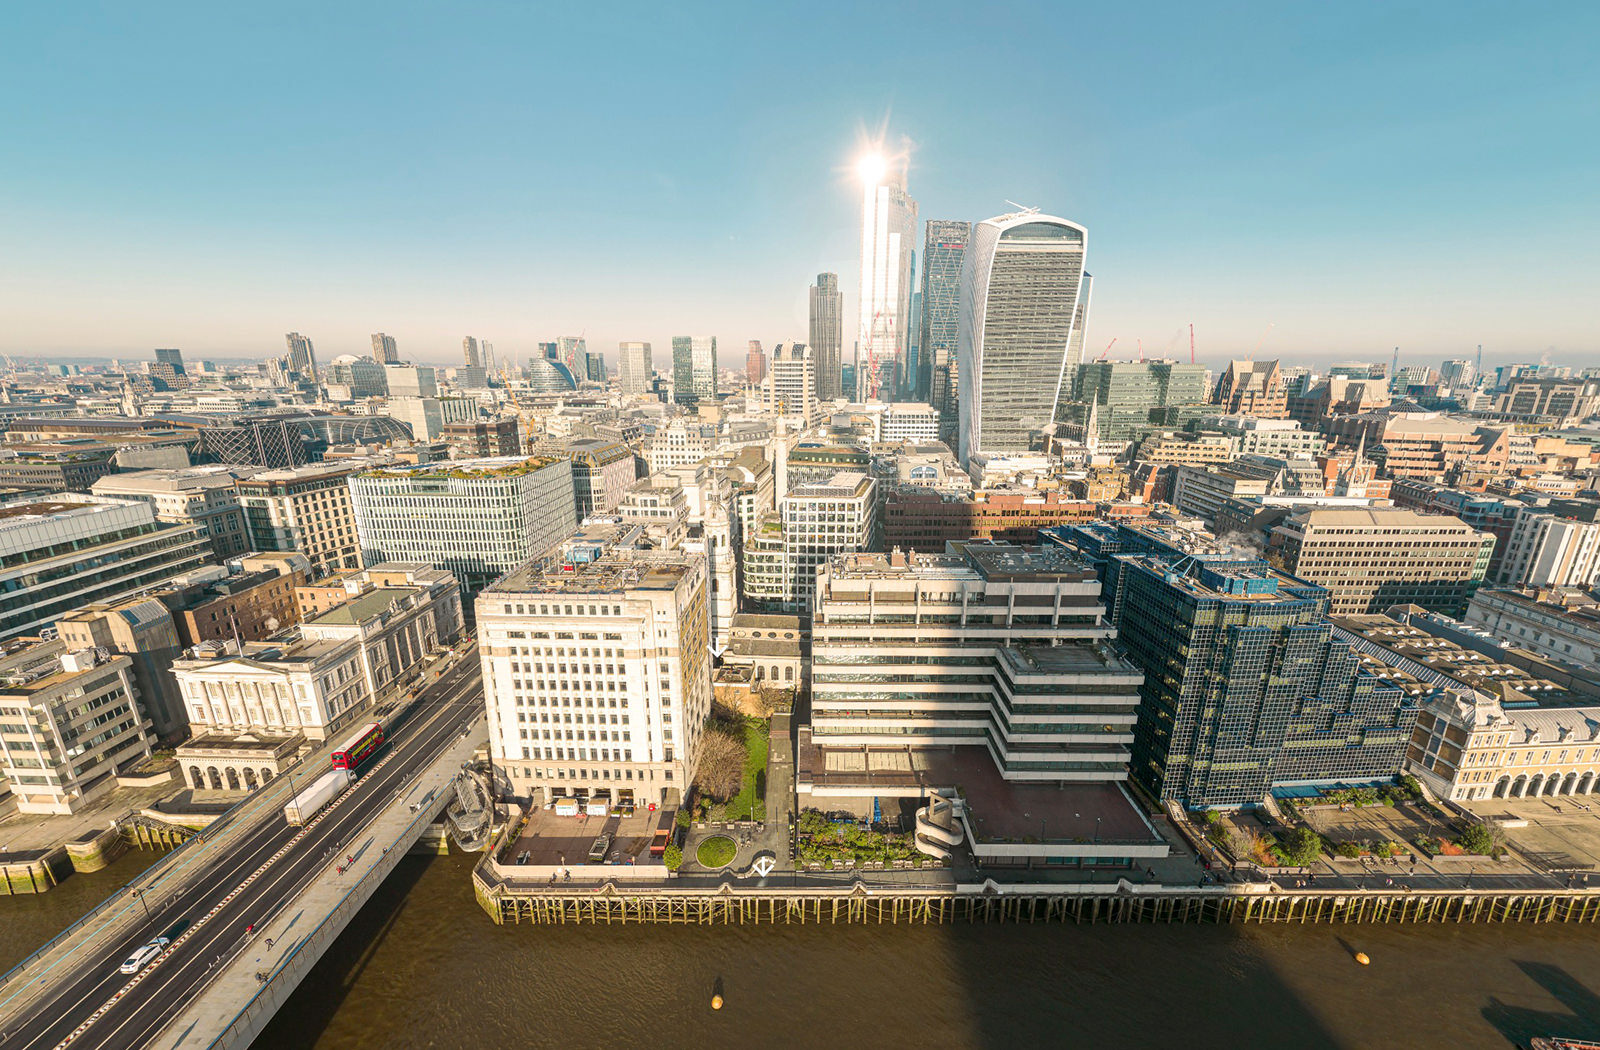 Still image taken from the aerial 360 for the St Magnus Church virtual tour. The image is taken from high above the River Thames and shows London Bridge, St Magnus the Martyr and Adelaide house, with the City of London in view behind them.